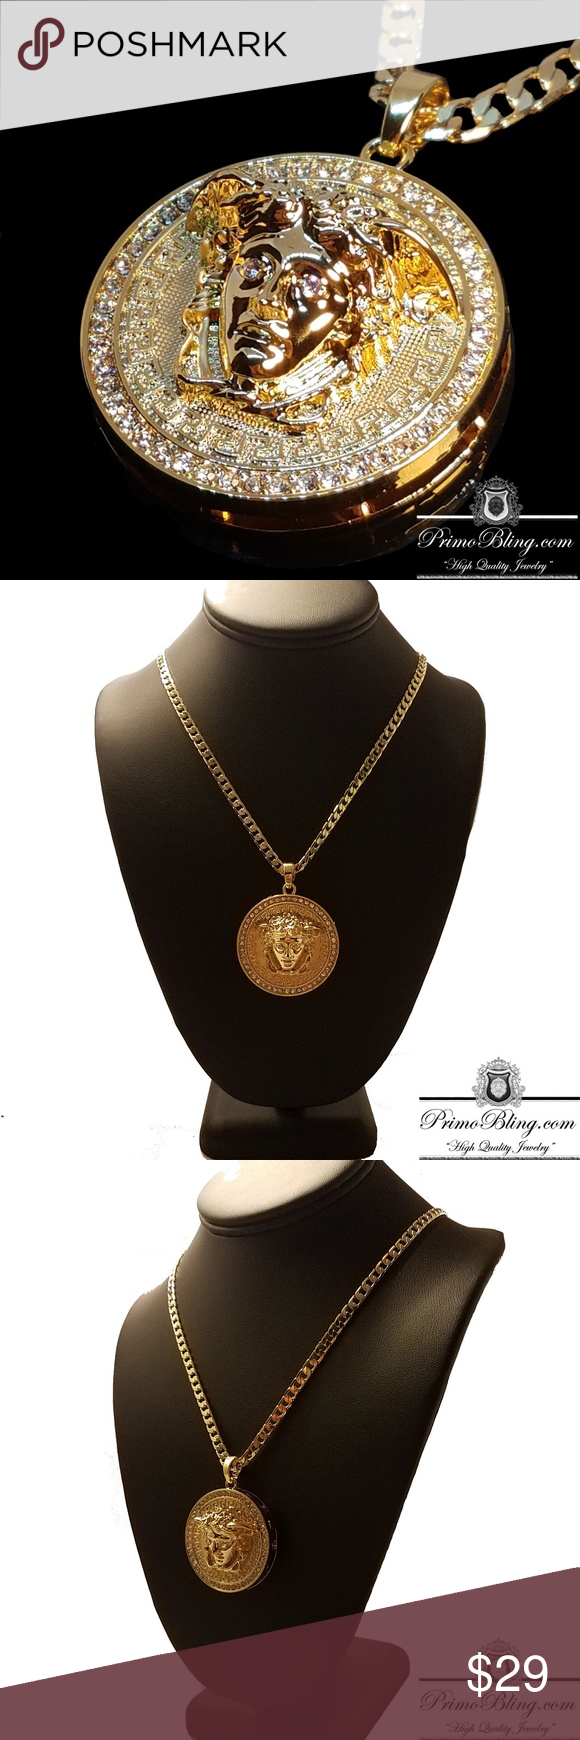 rebecca gold medallion shop constantine card bree sale necklaces pamela delicate necklace plated